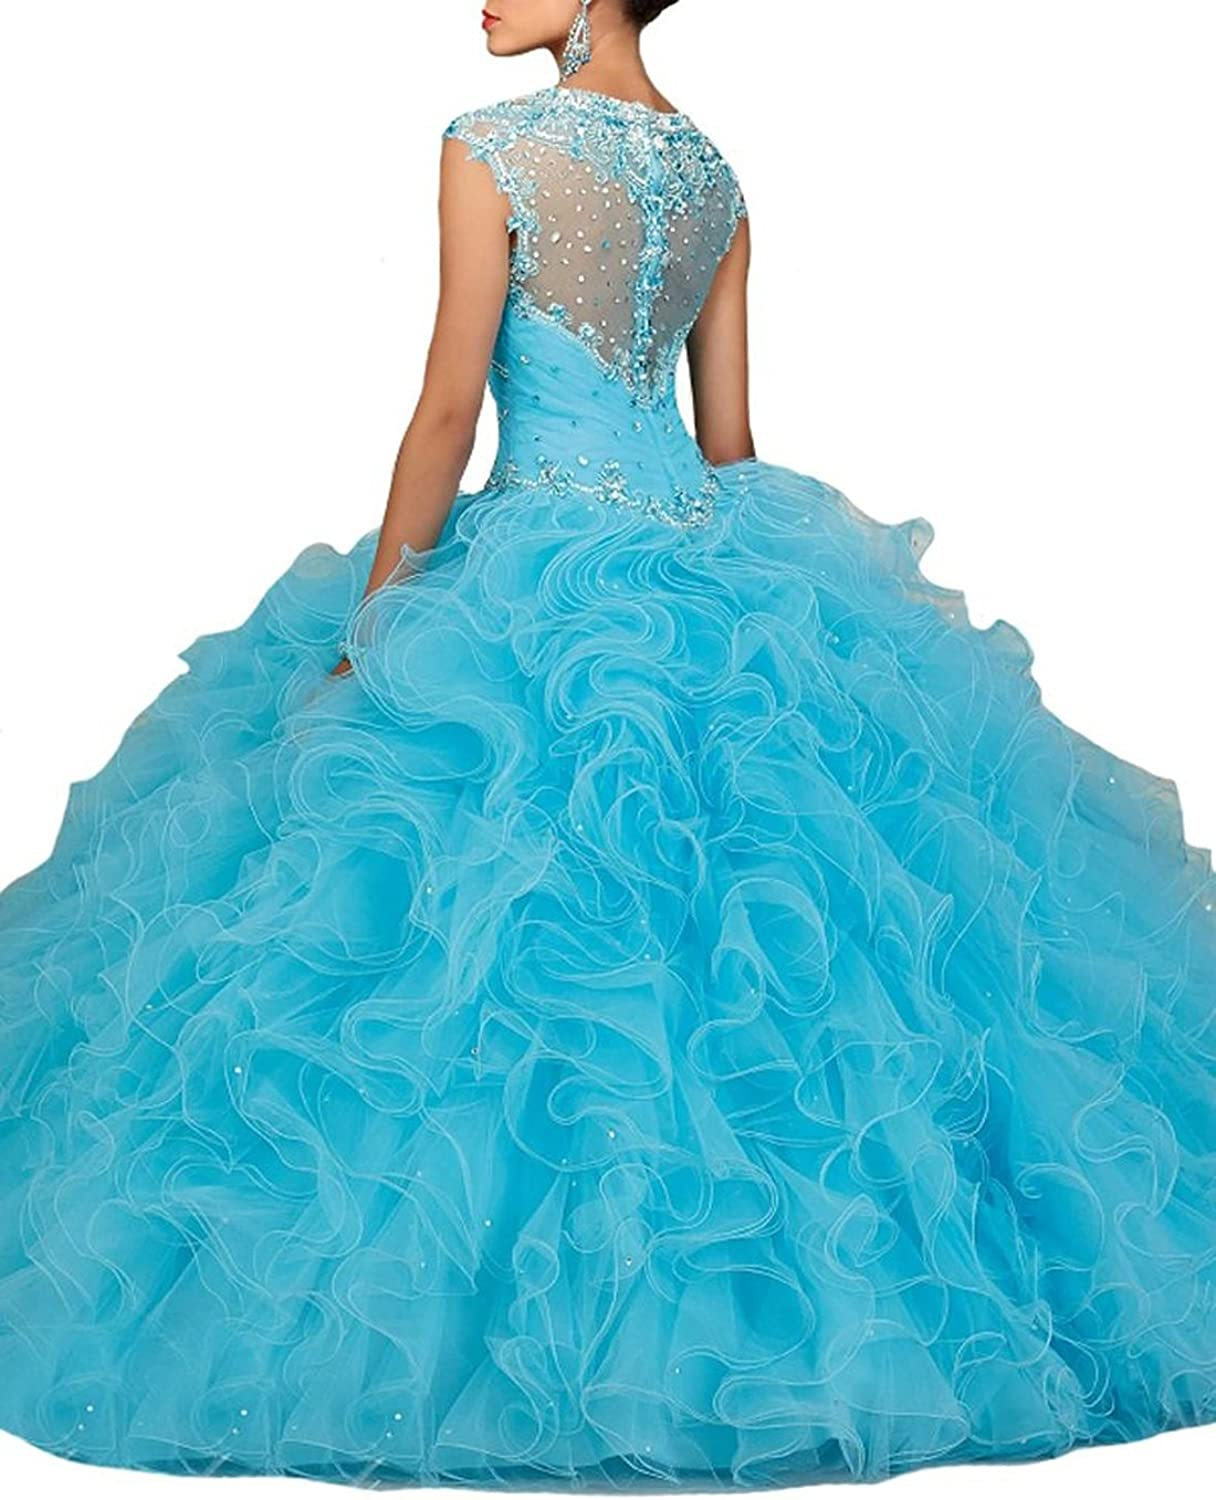 Engerla Women's Sweetheart Strap Ruched Layered Beaded Organza Quinceanera Dress